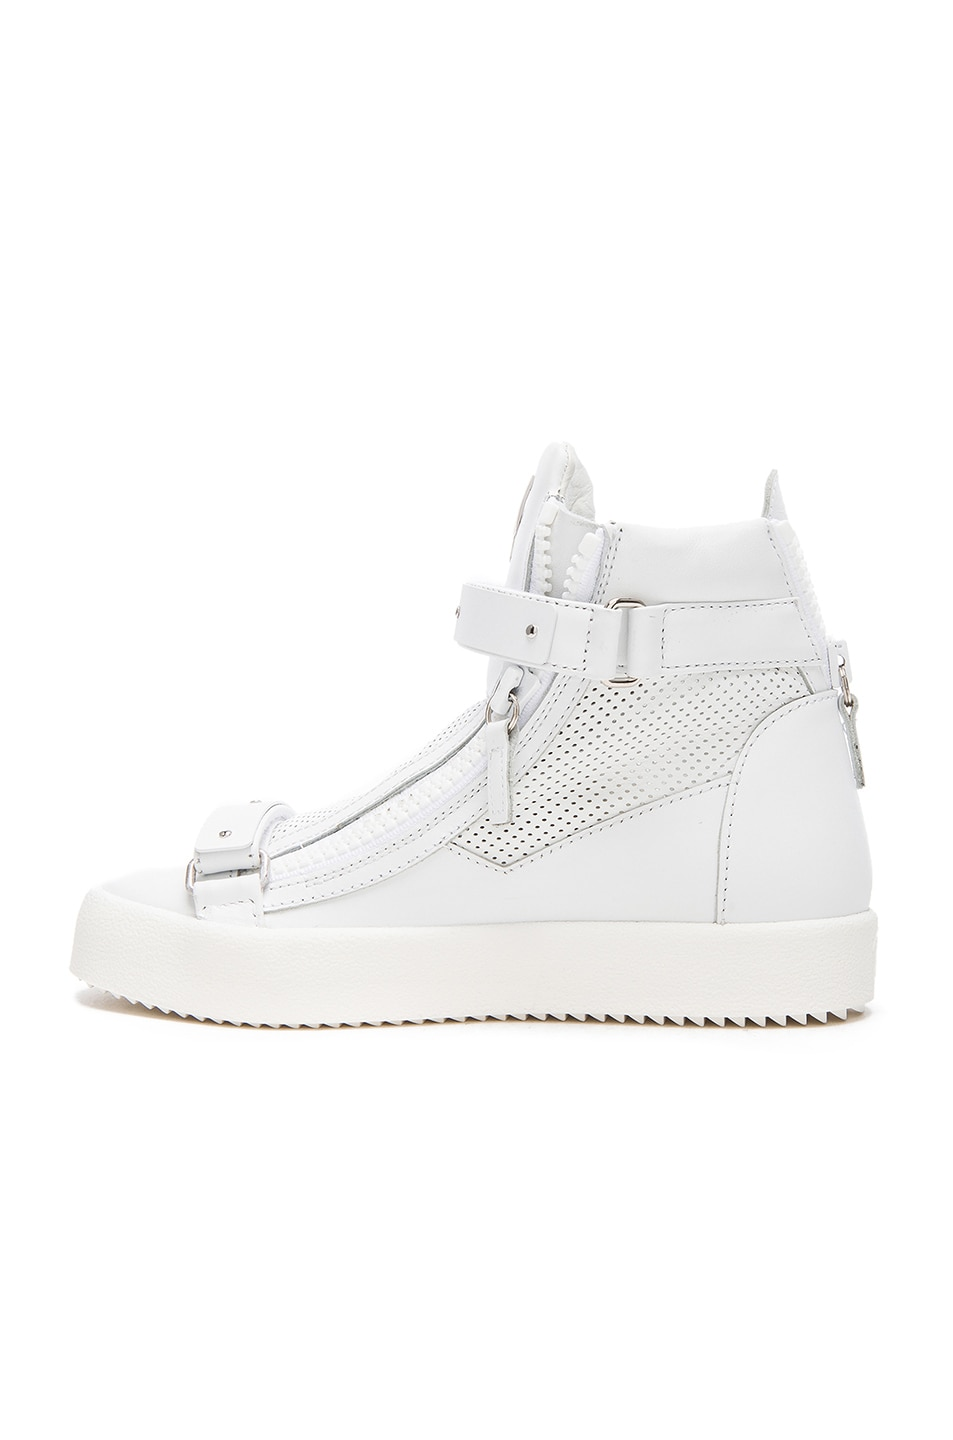 Image 5 of Giuseppe Zanotti Perforated Leather High Top Sneakers in White